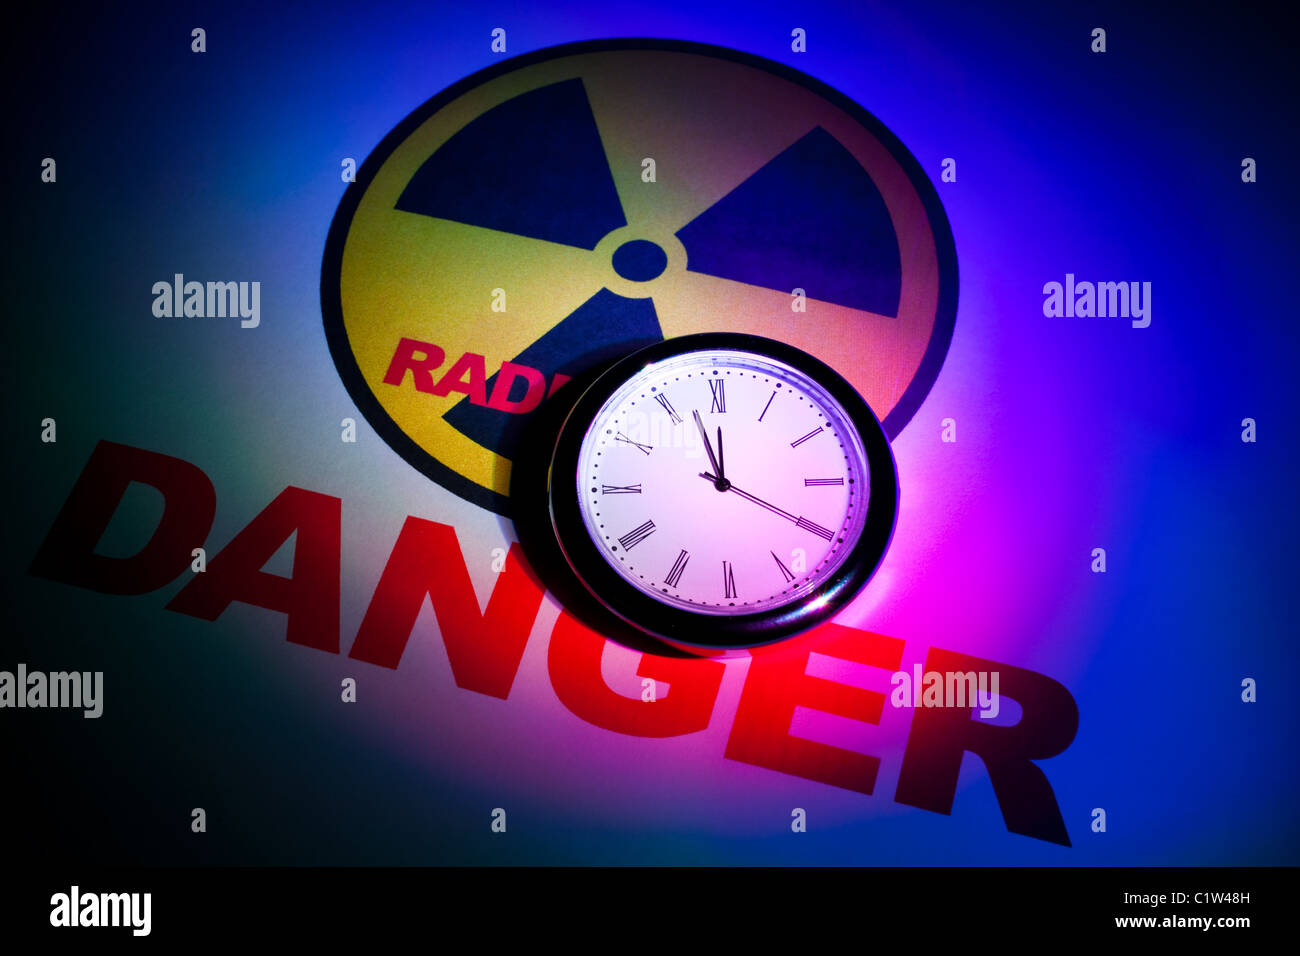 Radiation hazard sign for background Stock Photo